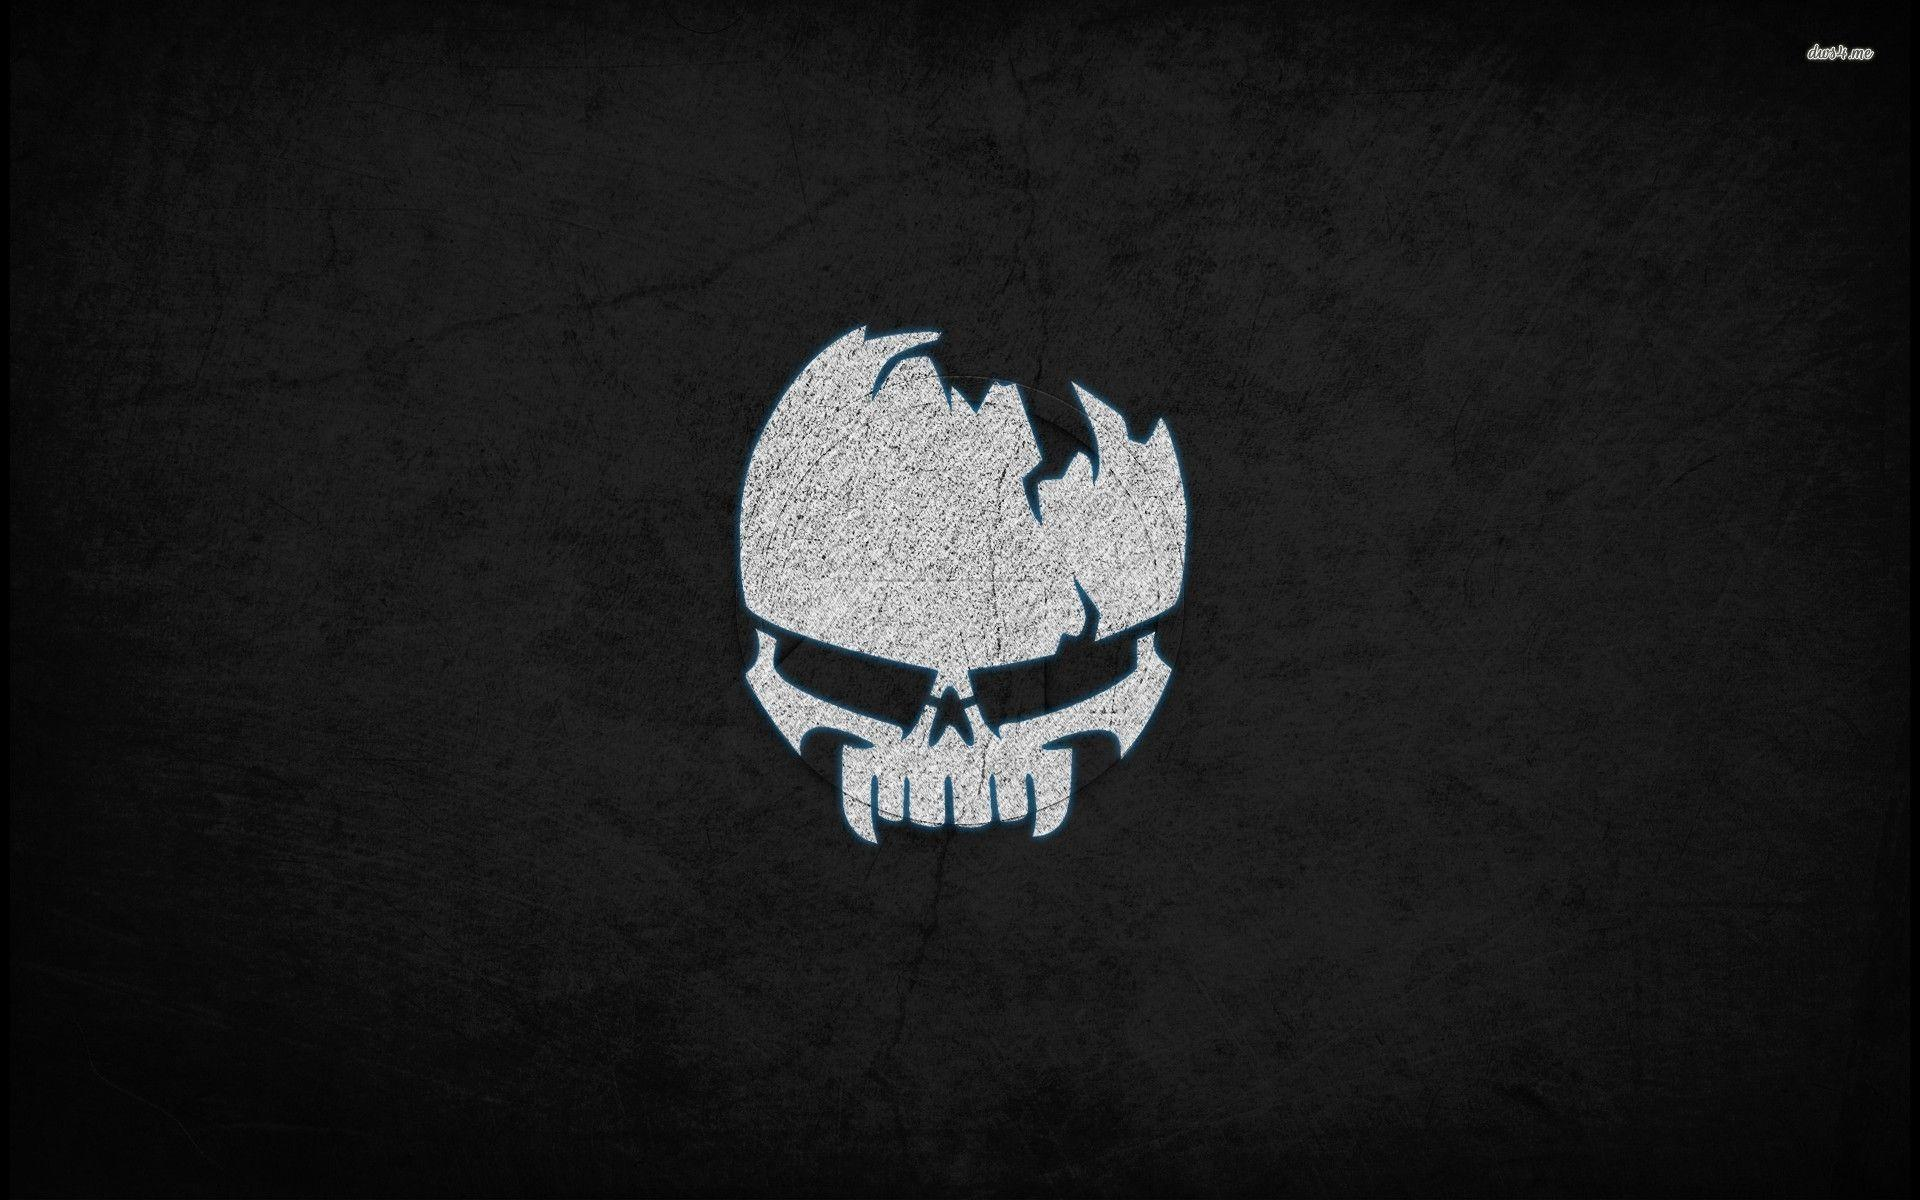 Harley Davidson Skull Wallpapers Hd Wallpaper Cave